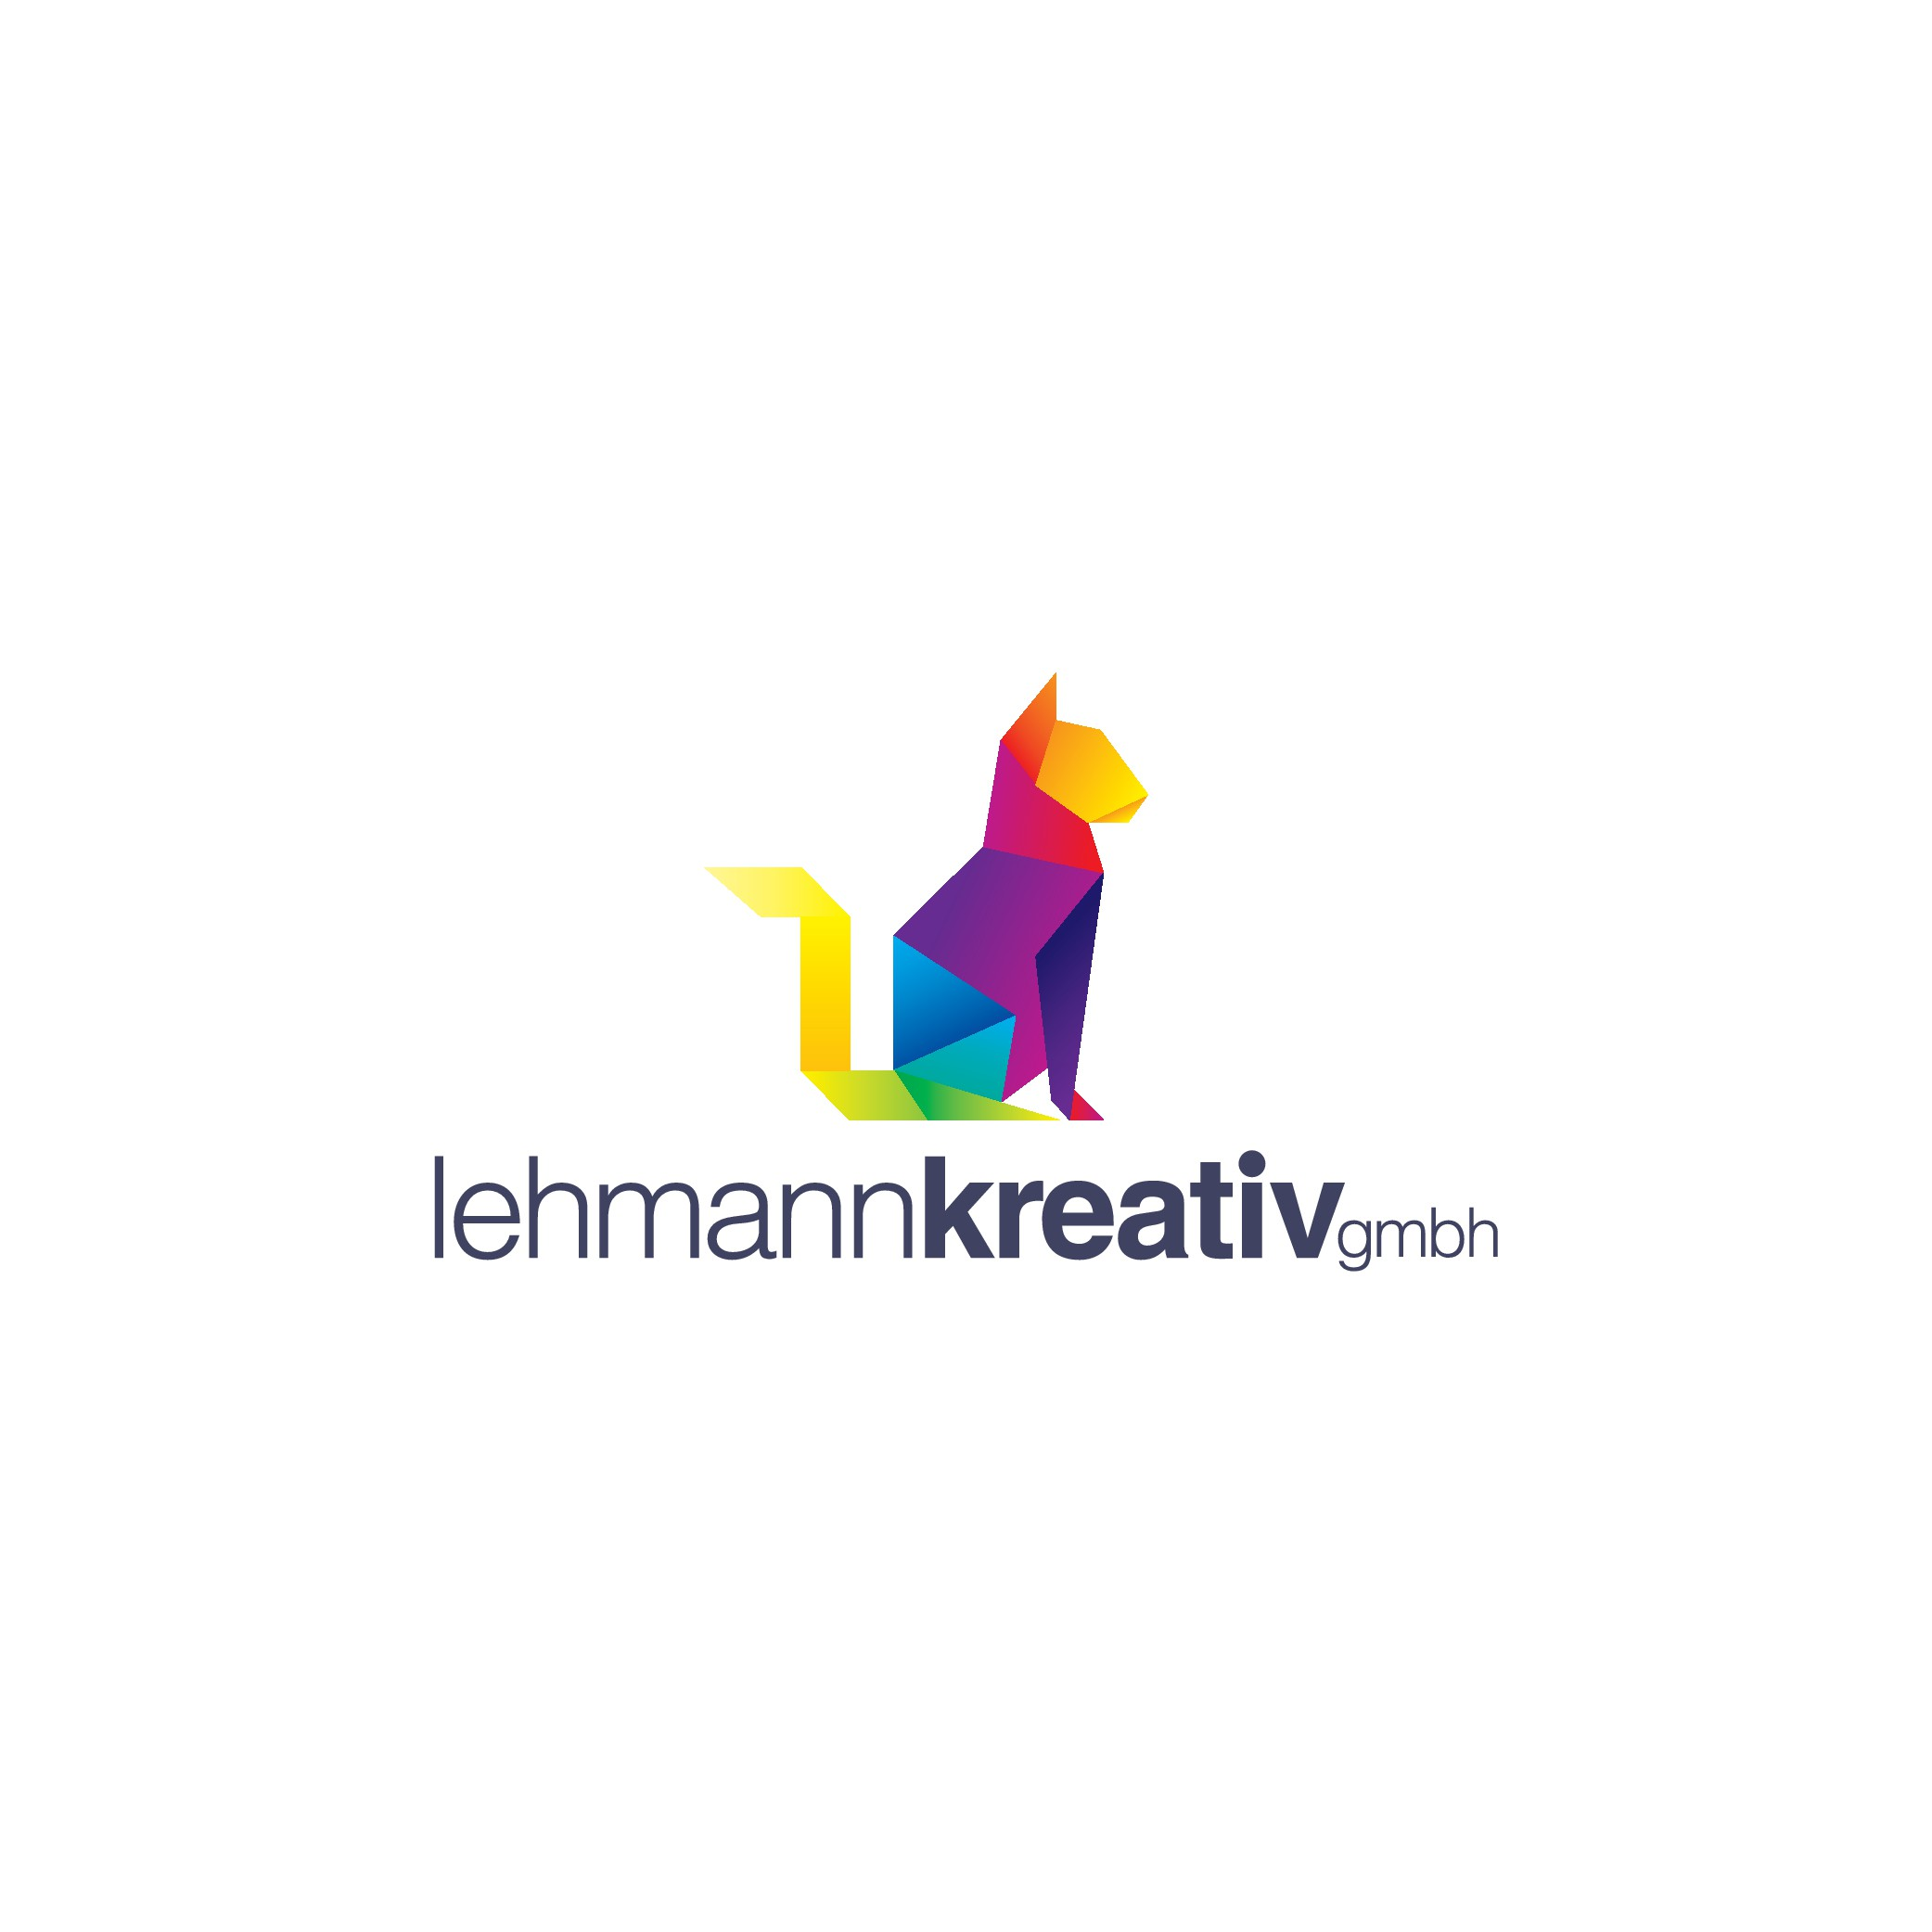 lehmann kreativ gmbh - we search a stylish and simple logo with graphic for our new company